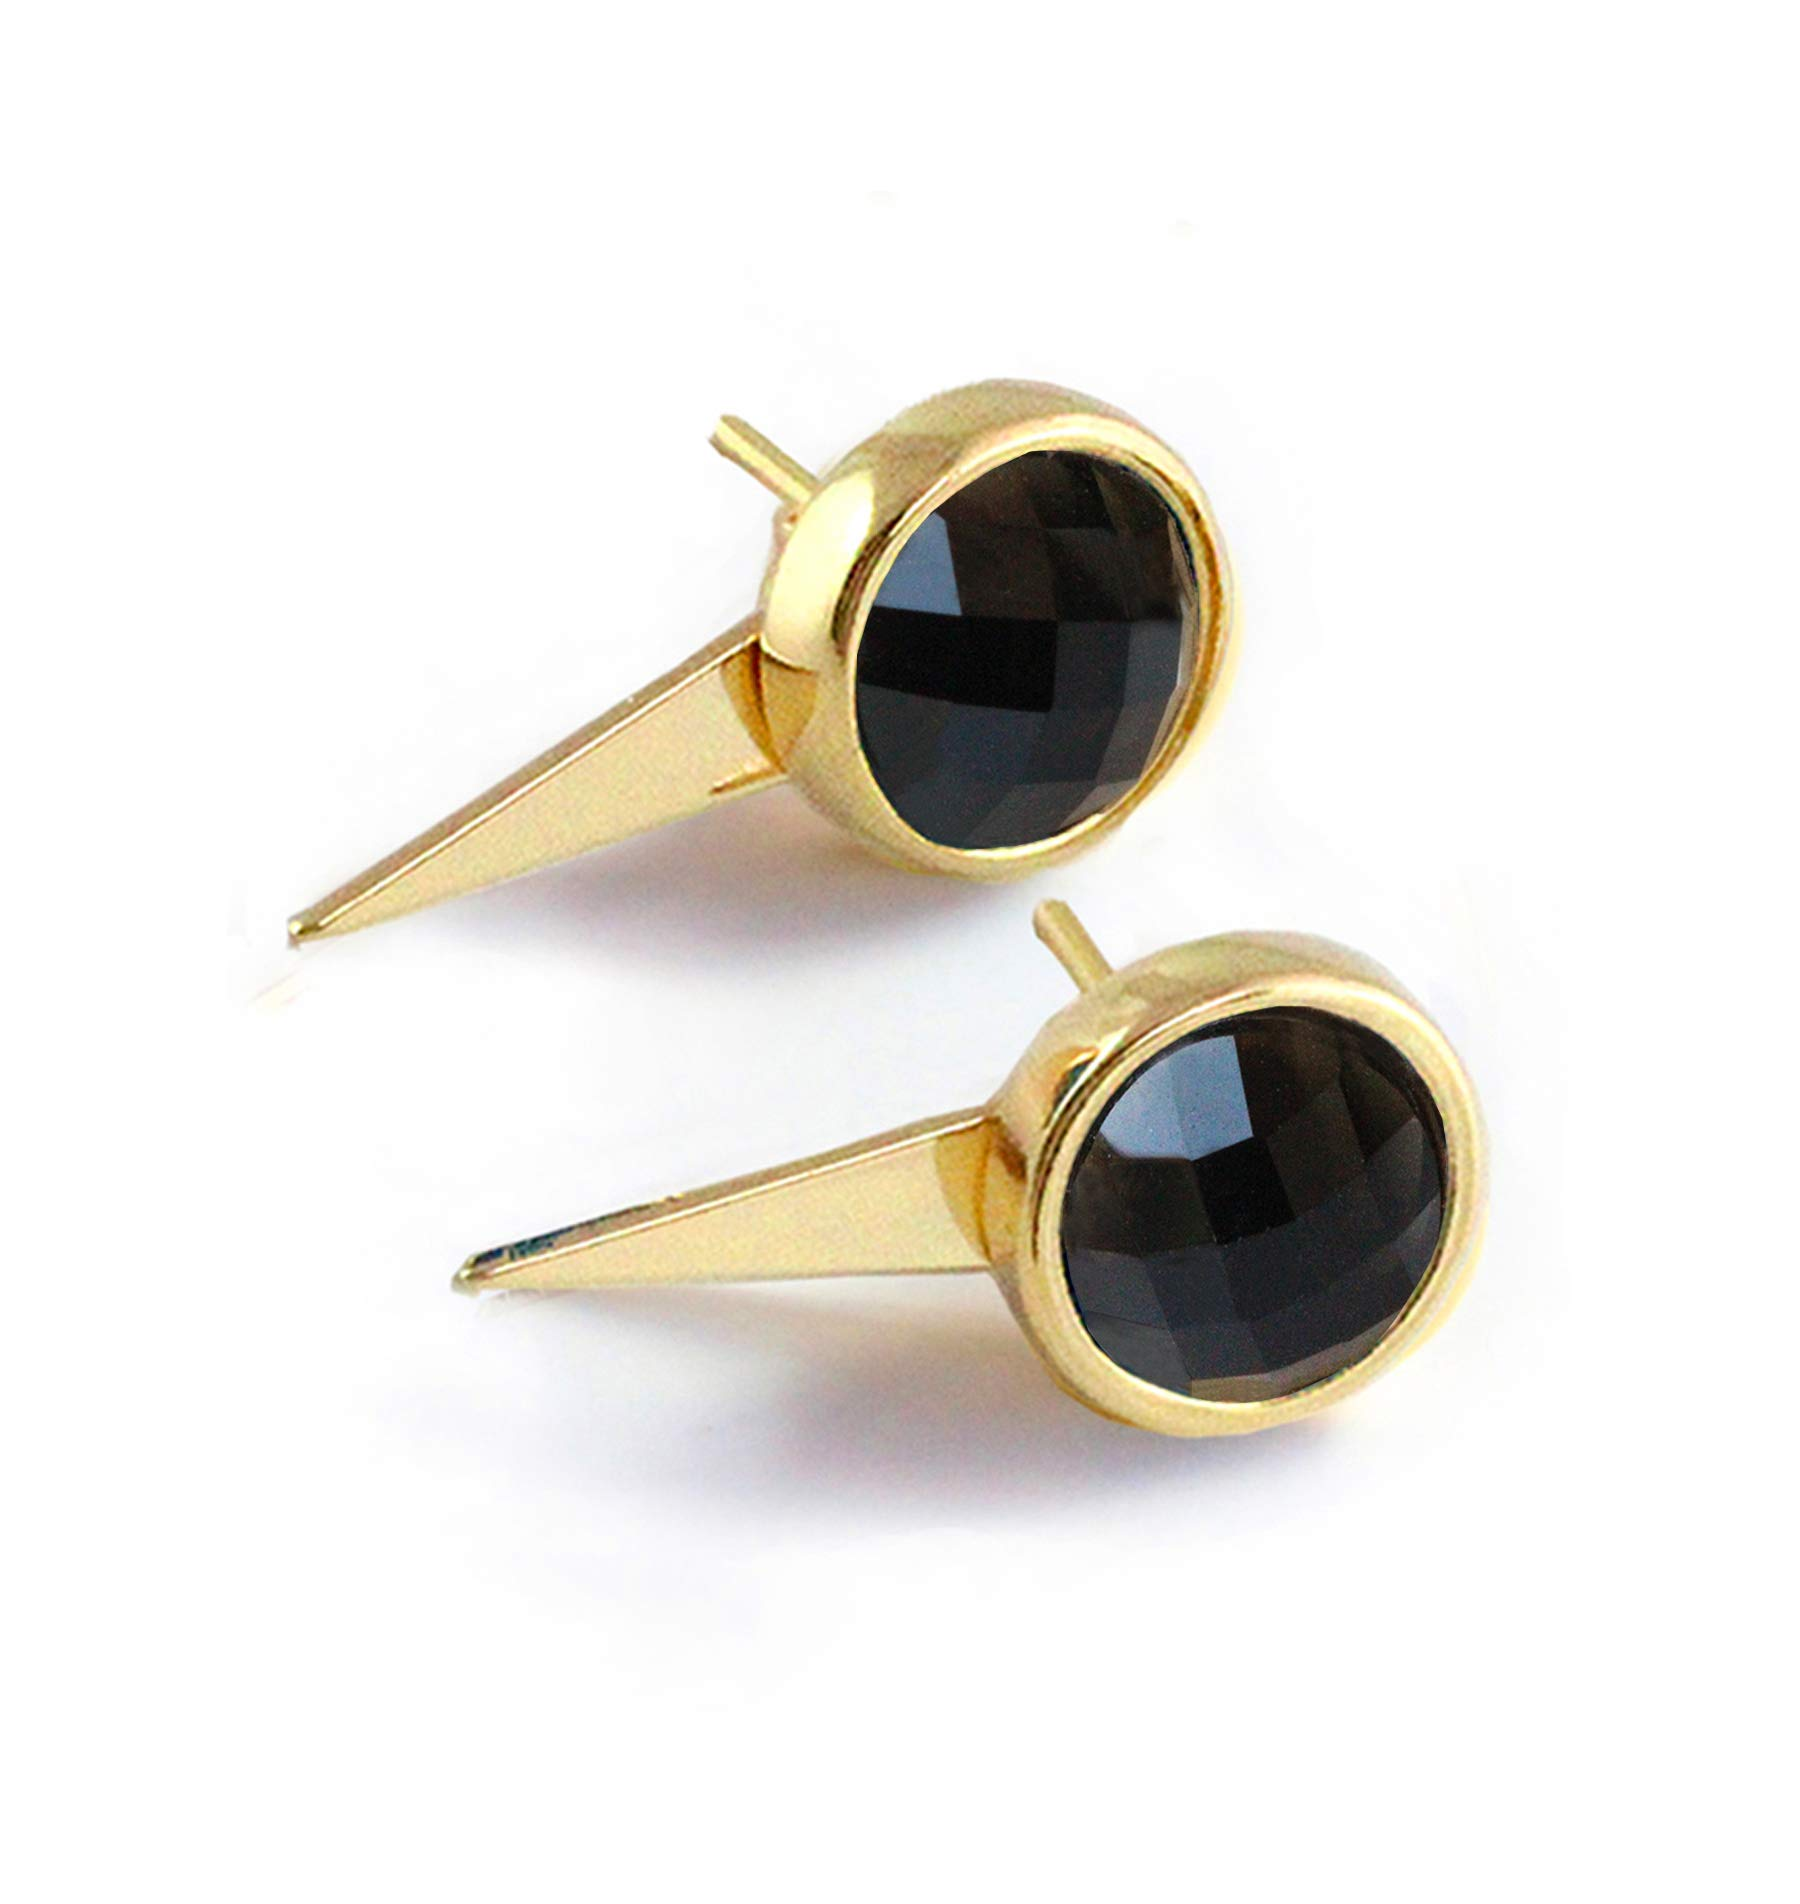 FIRE EARRING JACKETS | Black Stud Earrings For Women | 24K Gold Round Black Onyx Gemstone Ear Studs | Convertible | Triangle Spike | Minimalist | Edgy | Unique Gifts for her Jewelry